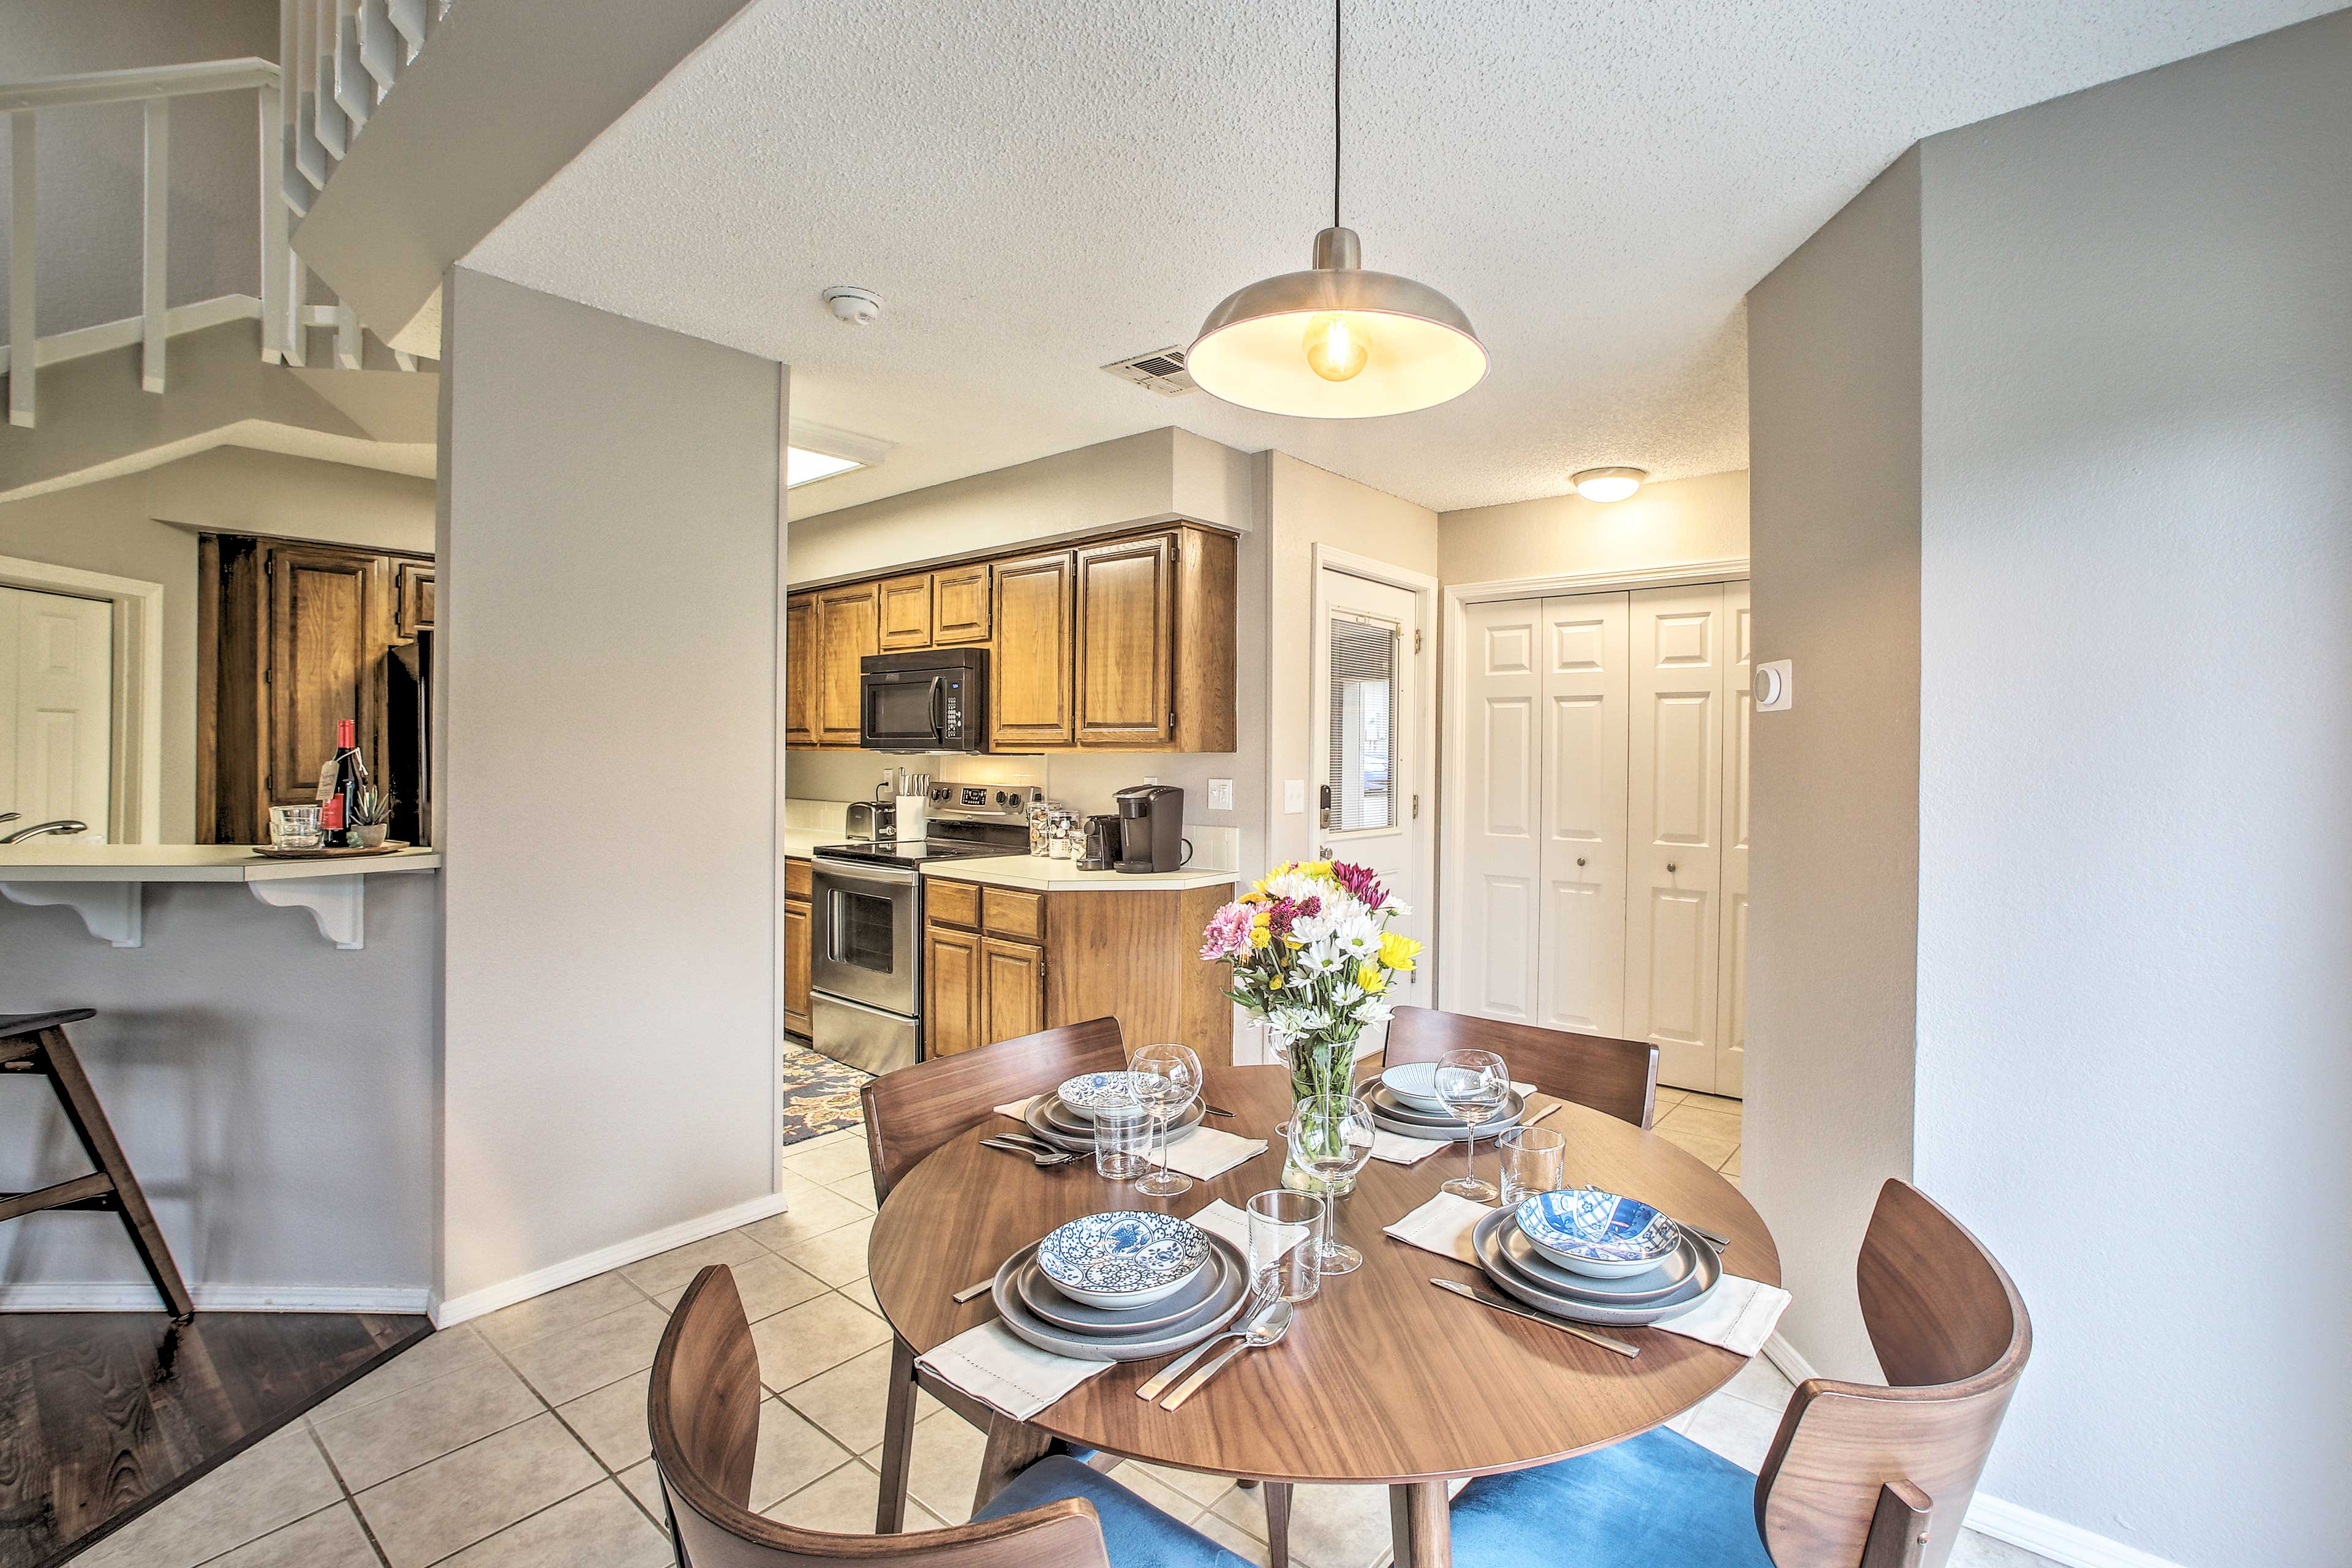 When dinner is ready, dine together at the 4-person table!